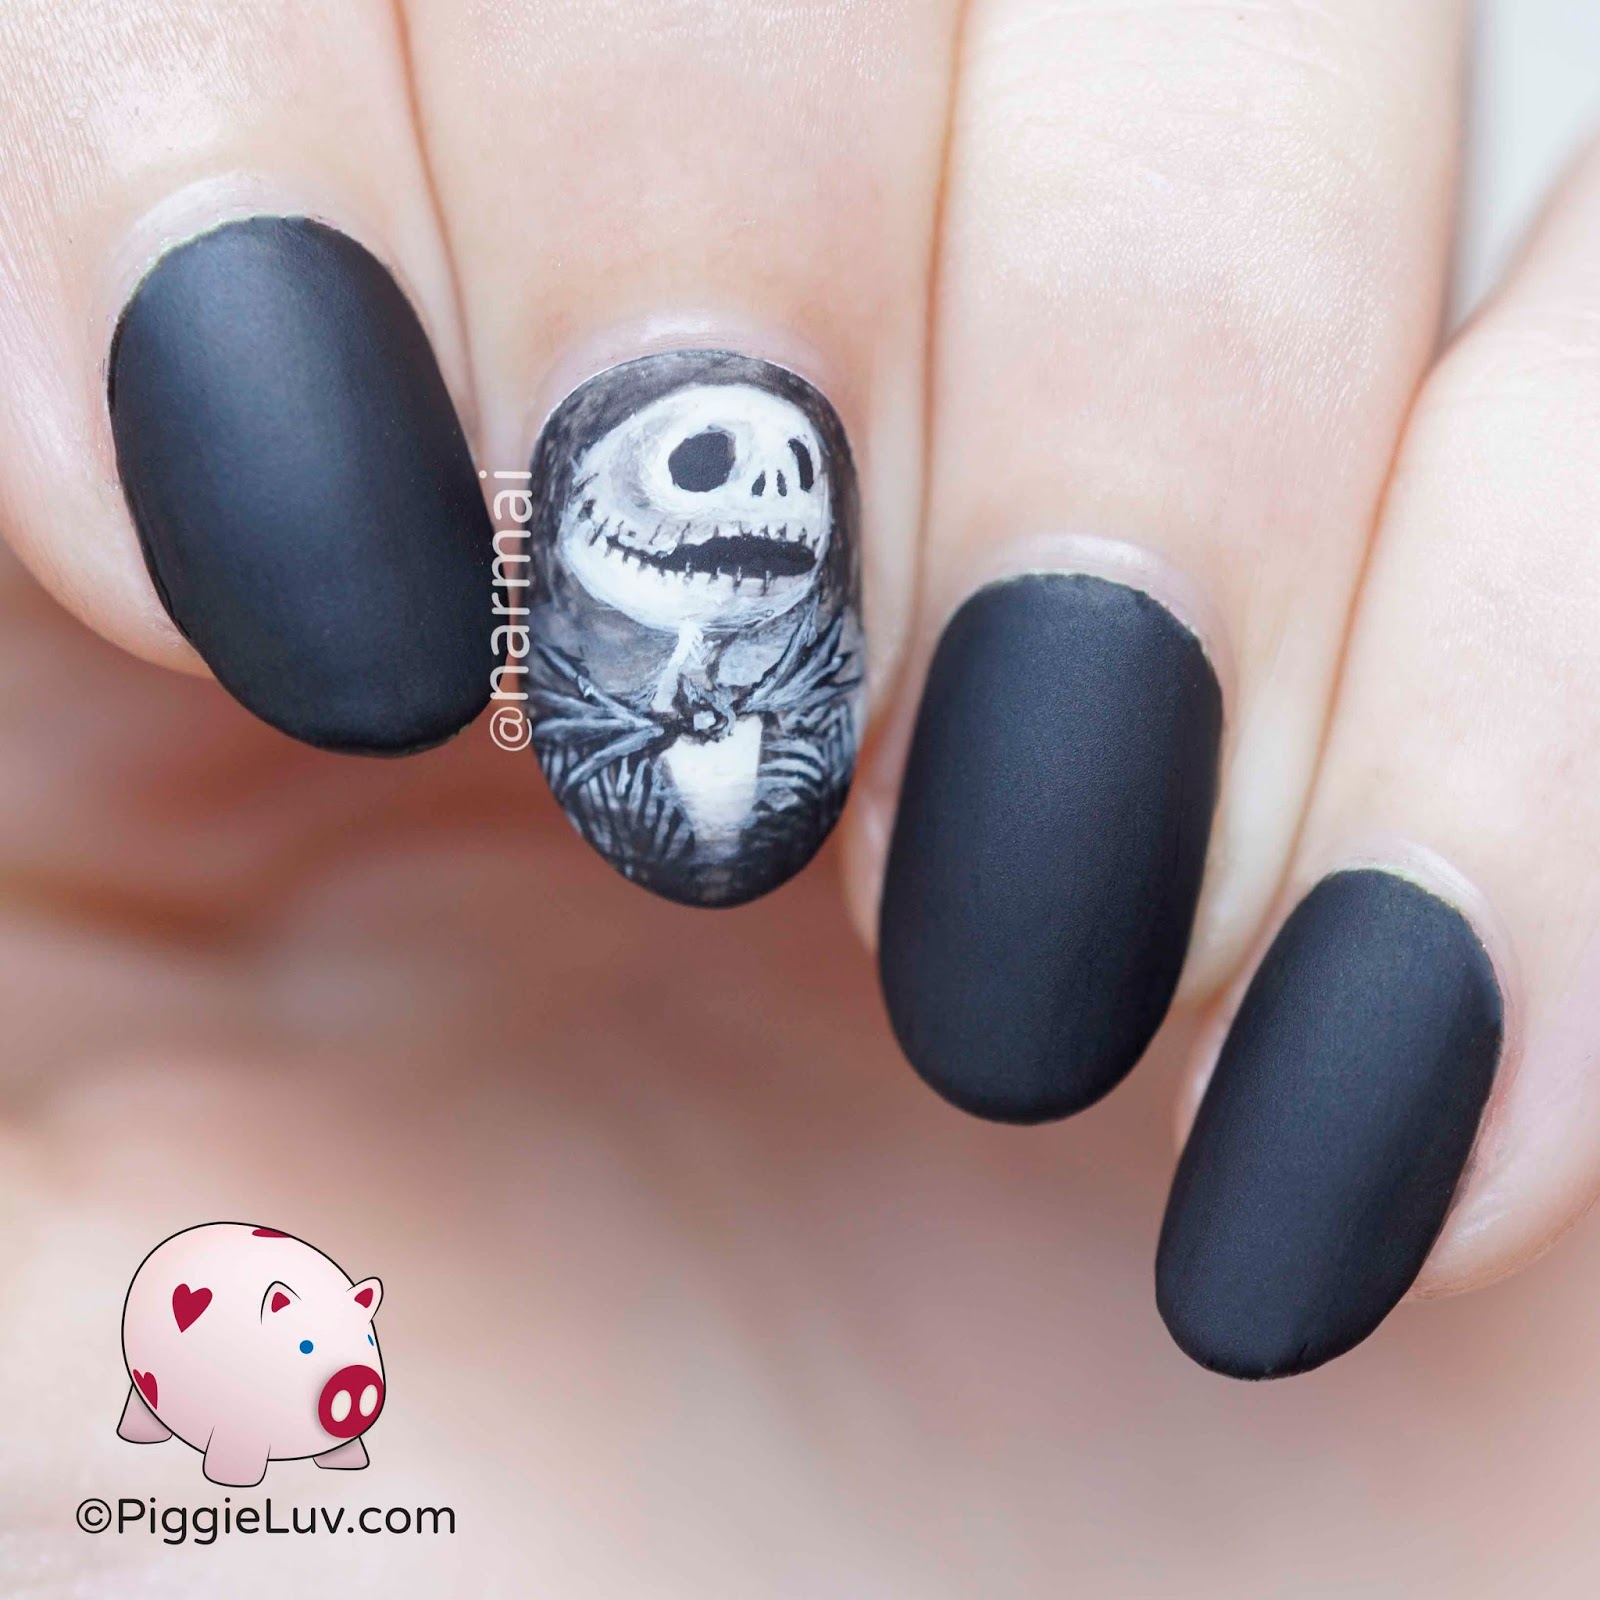 PiggieLuv: Jack Skellington nail art for Halloween